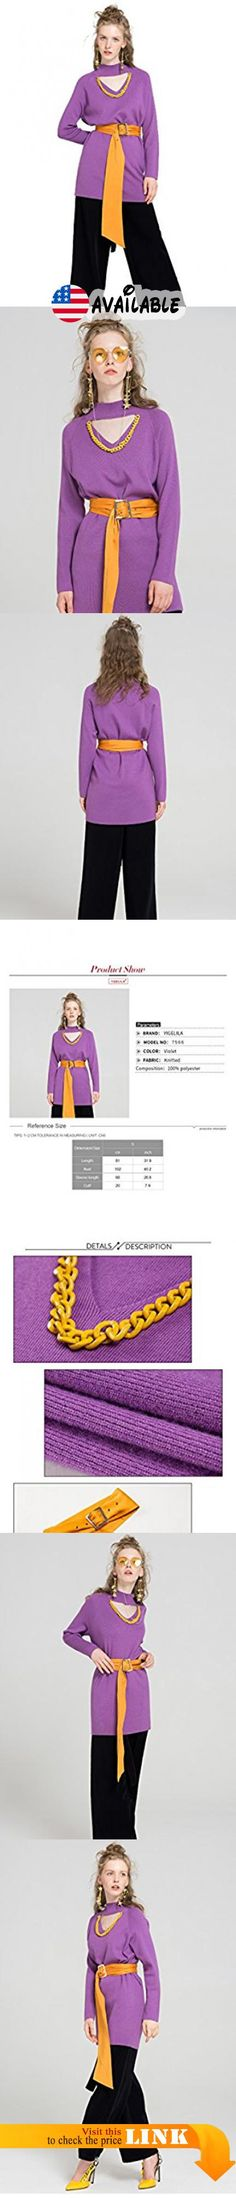 YIGELILA Sexy Hollow Purple Long Sleeve Knitted Women Long Sweatshirt Tops. Brand: YIGELILA. Custom-made Services.. Women Purple Tops. Occasion: This Perfect Fitted Tops Can be Worn for Any Occasion, Such as Party, Club, Casual, Outdoor, Evening, Cocktail, Prom Ball, Banquet, Vocation, Office, Summer, Holiday or Just Daily Wear.. Delivery: It usually takes 7-12 work days for international delivery by ePacket with tracking no. #Apparel #SKIRT